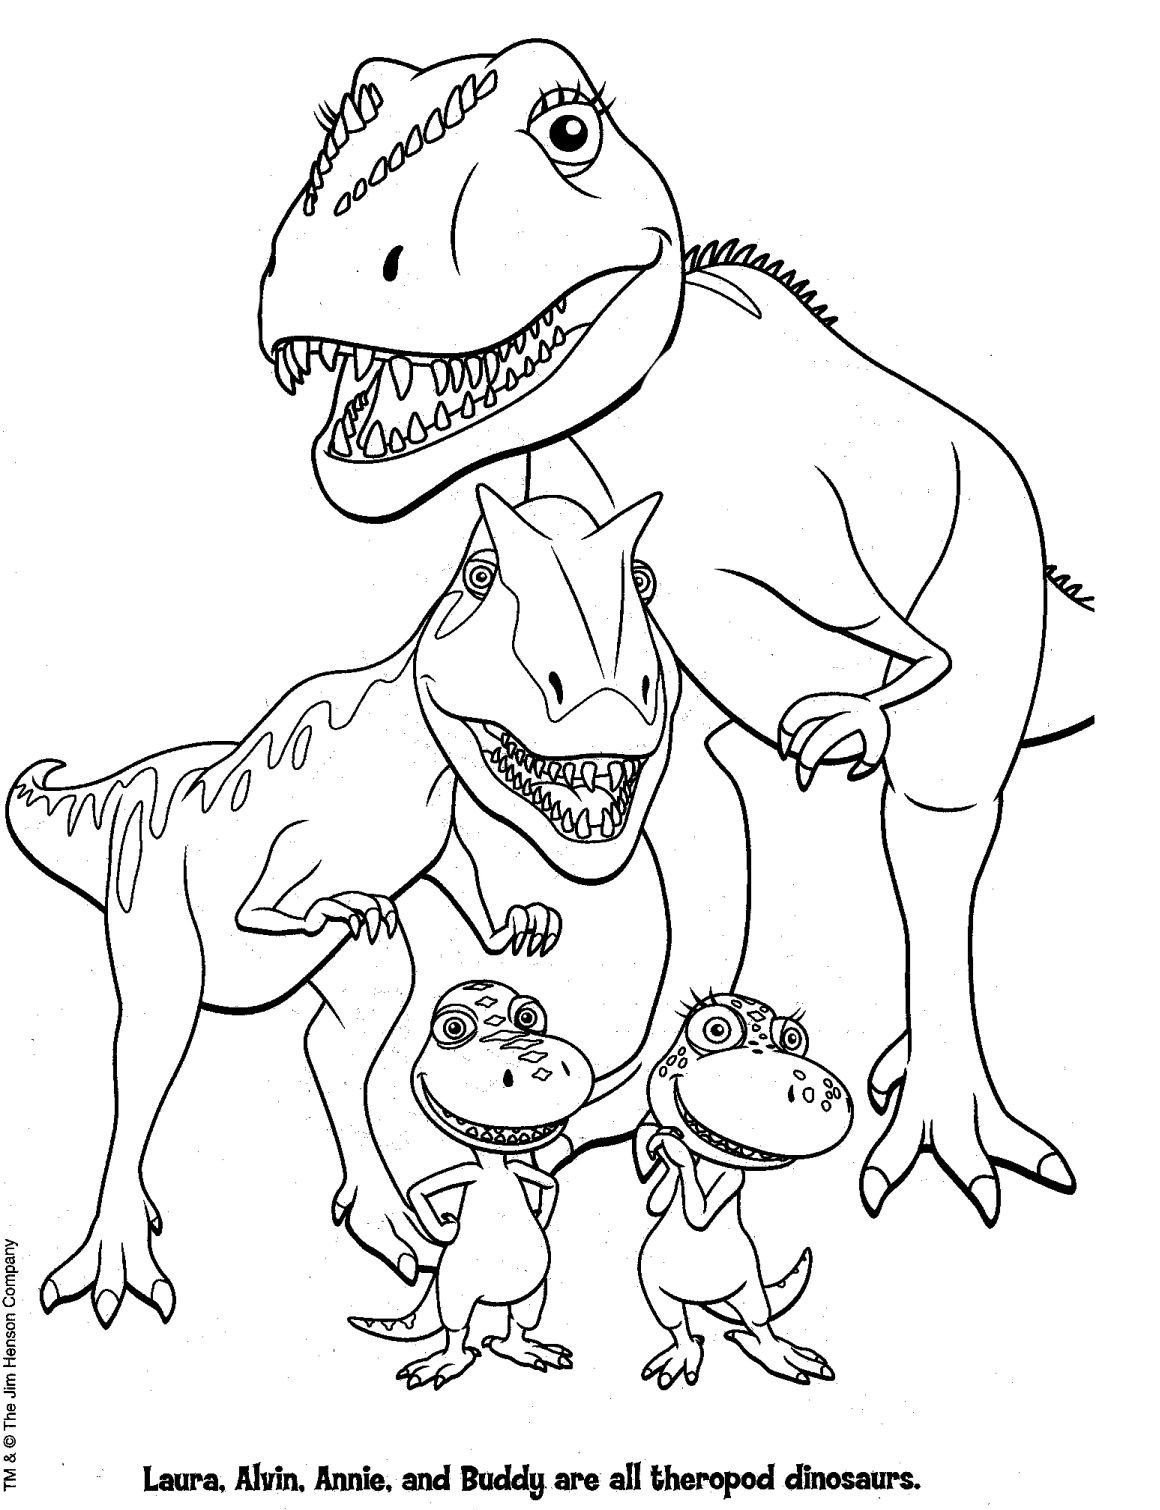 dinosaurs color pages the good dinosaur coloring pages to download and print for dinosaurs color pages